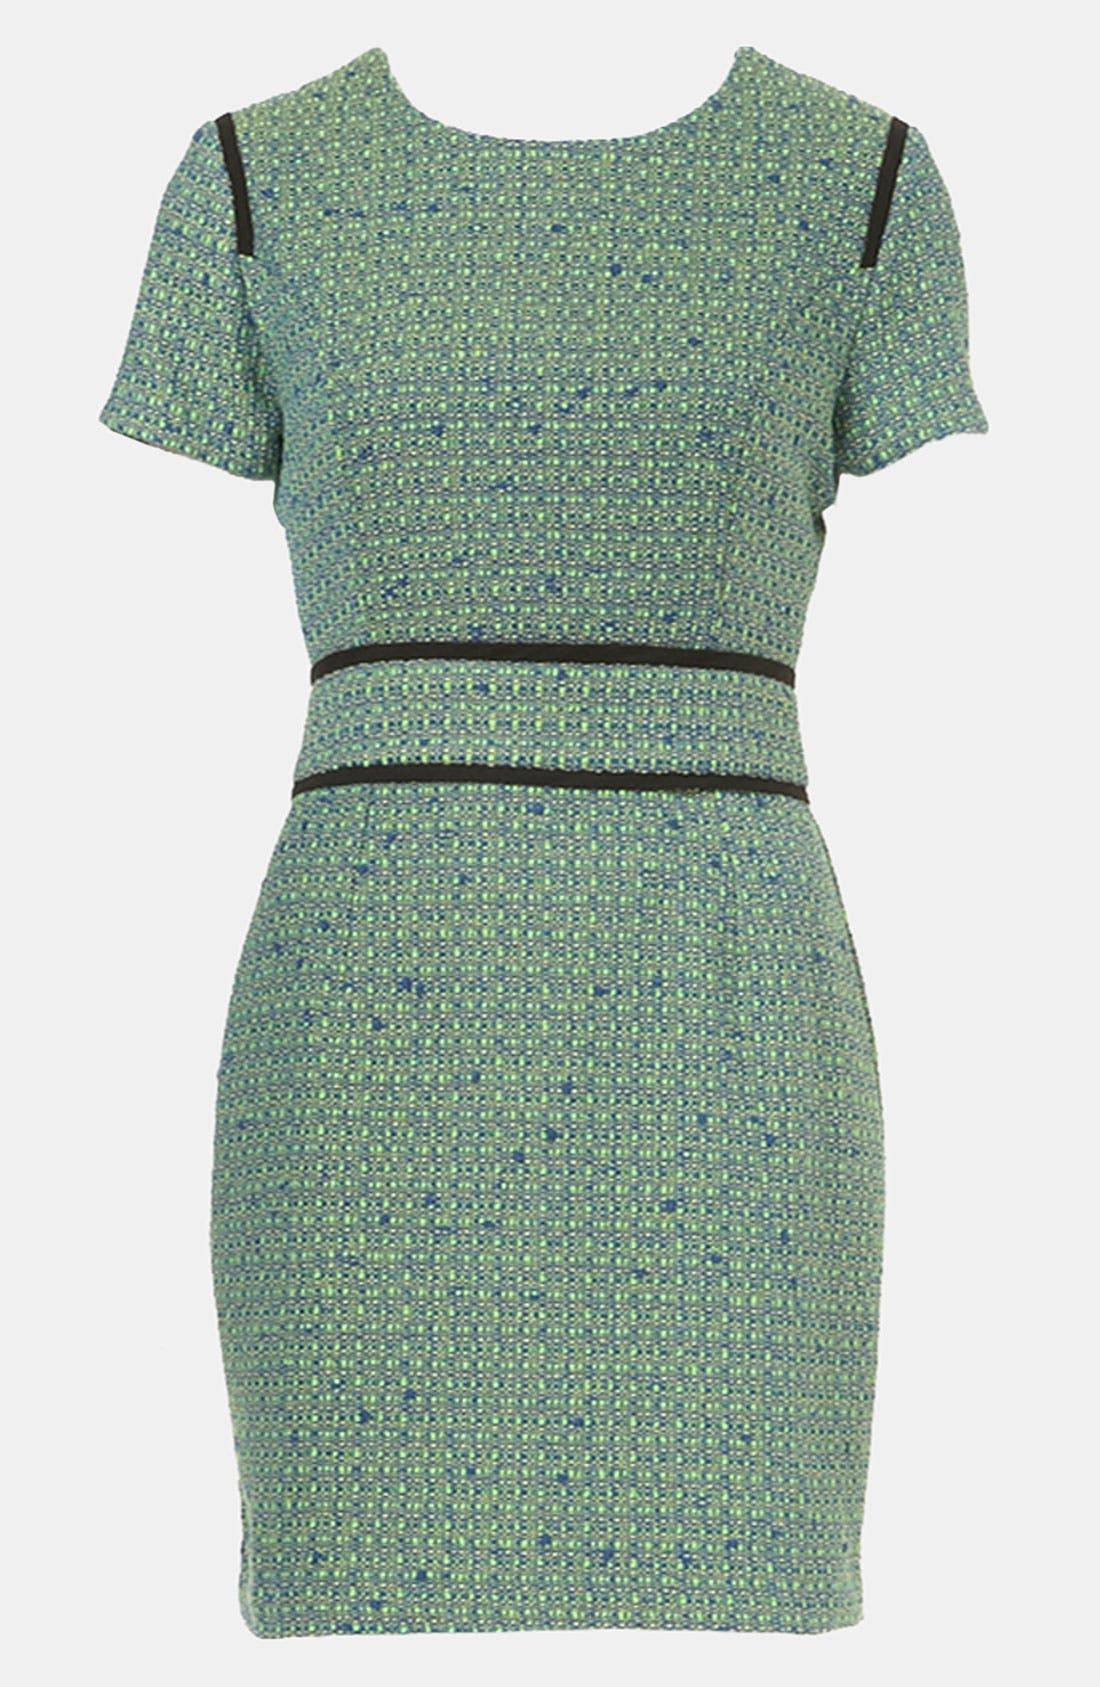 Alternate Image 1 Selected - Topshop Bouclé Pencil Dress